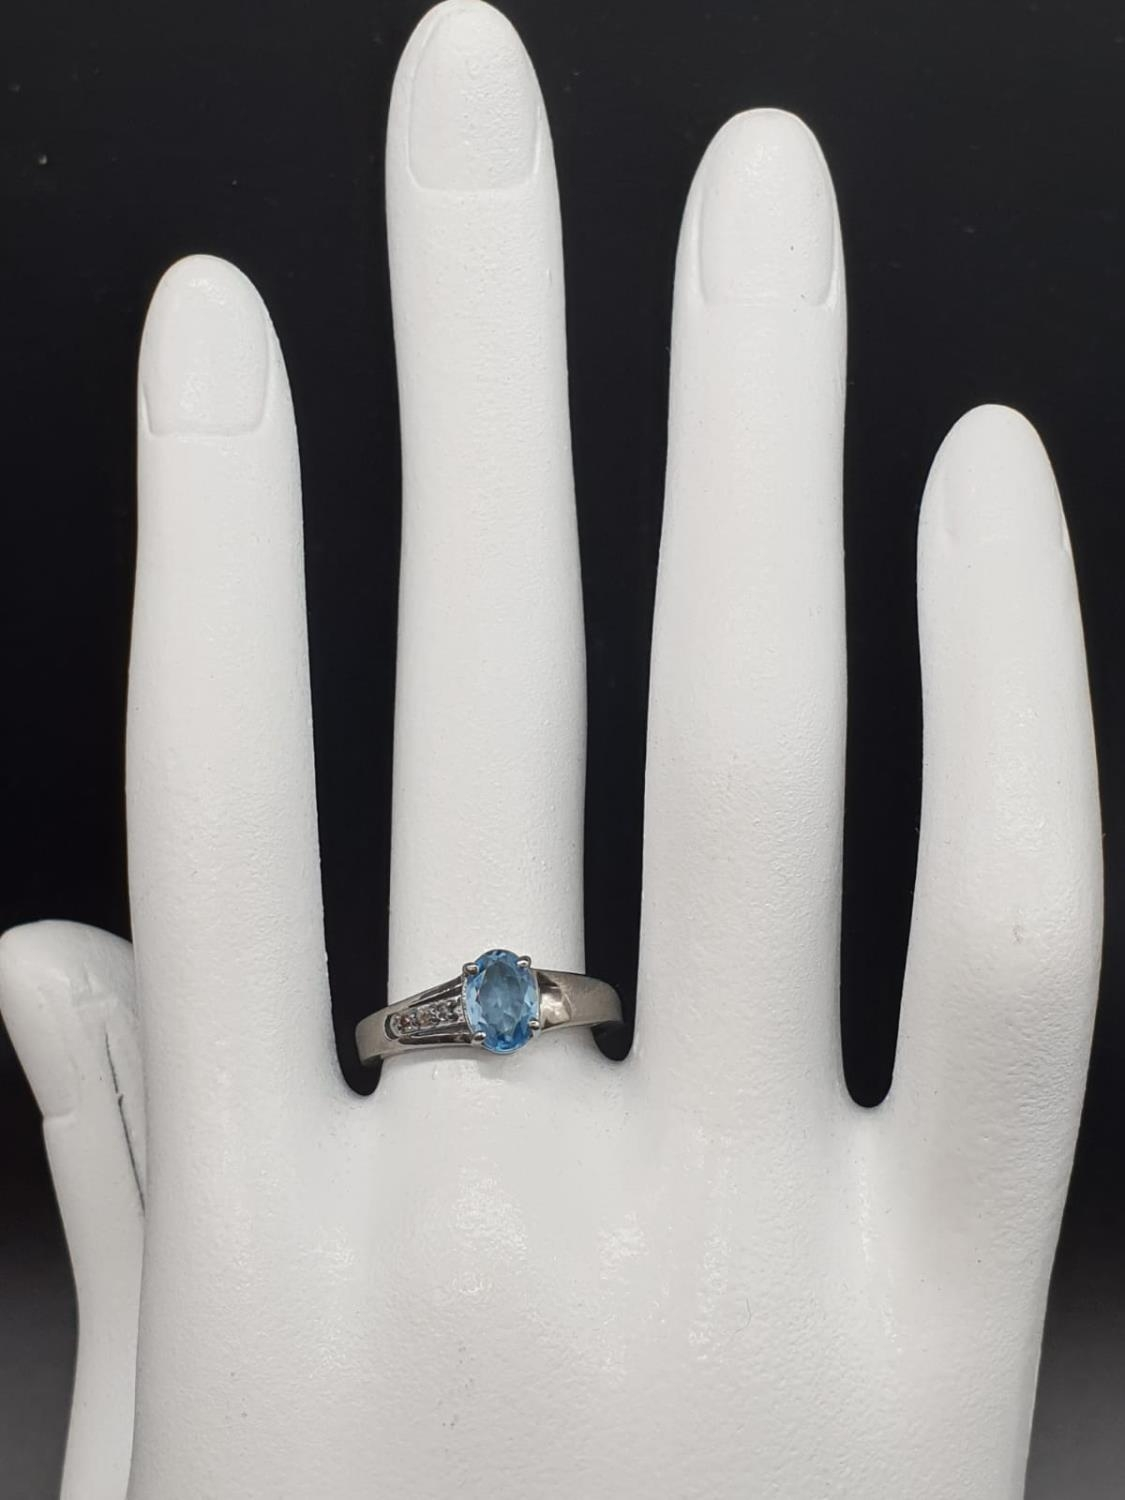 0.86 Ct Blue topaz stone inset a blackened silver ring. With 0.05 Ct rose cut diamonds, weight 2.35g - Image 6 of 7